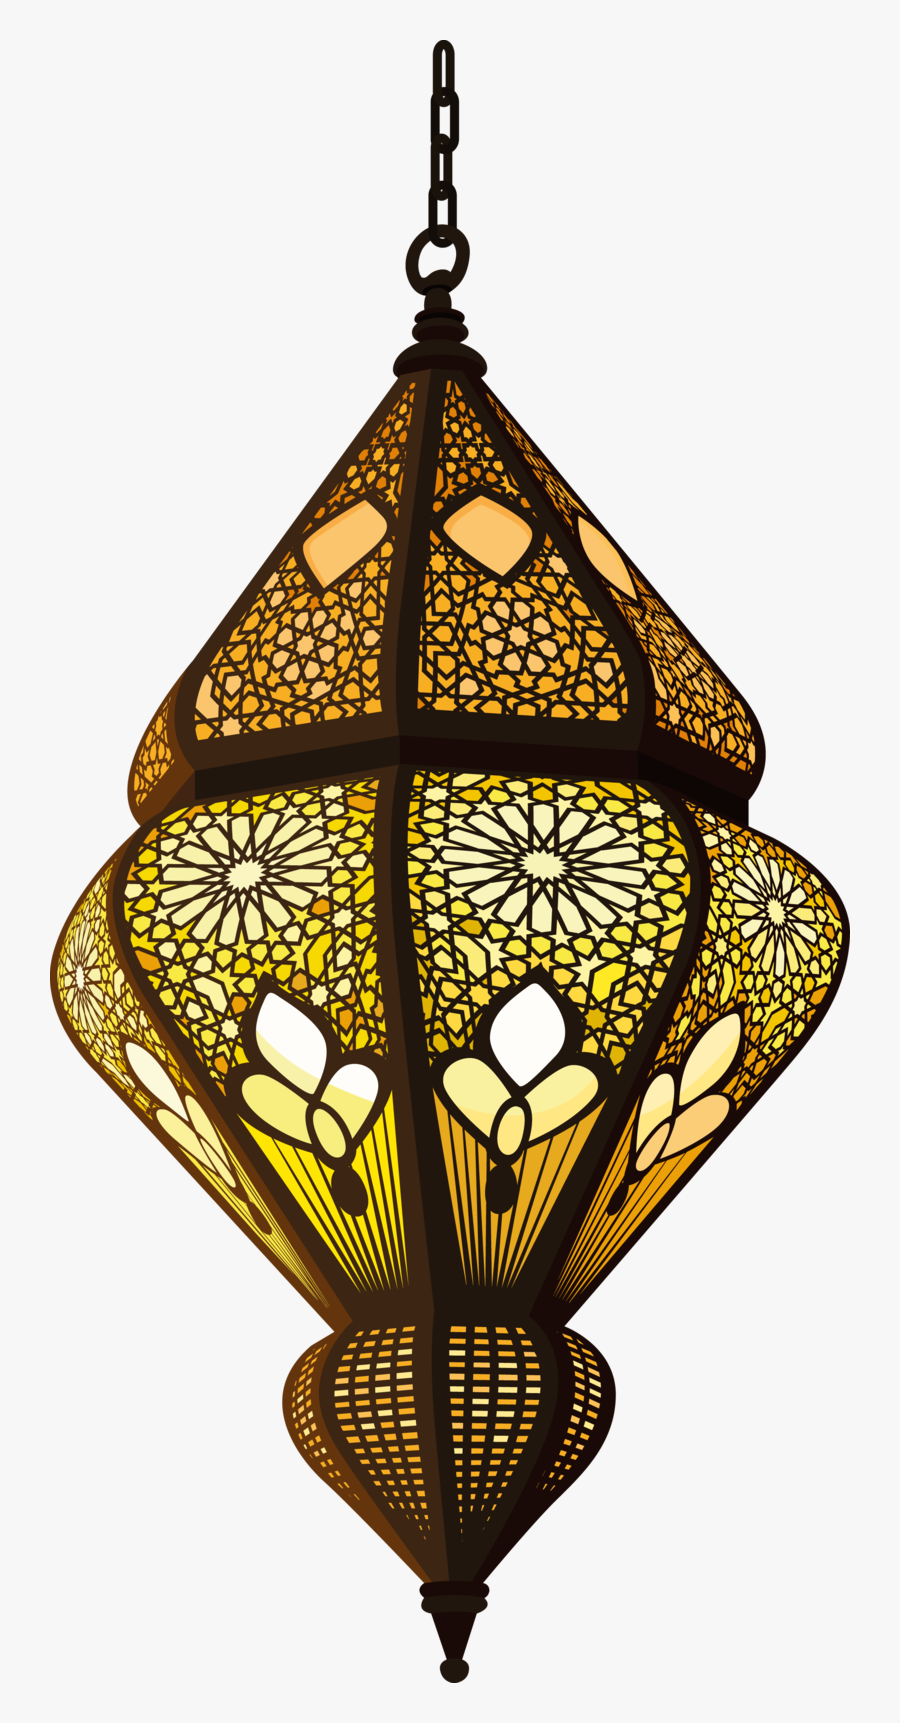 Decorative Muslim Quran Allah Sufism Lamp Islam - Islamic Lantern Png, Transparent Clipart